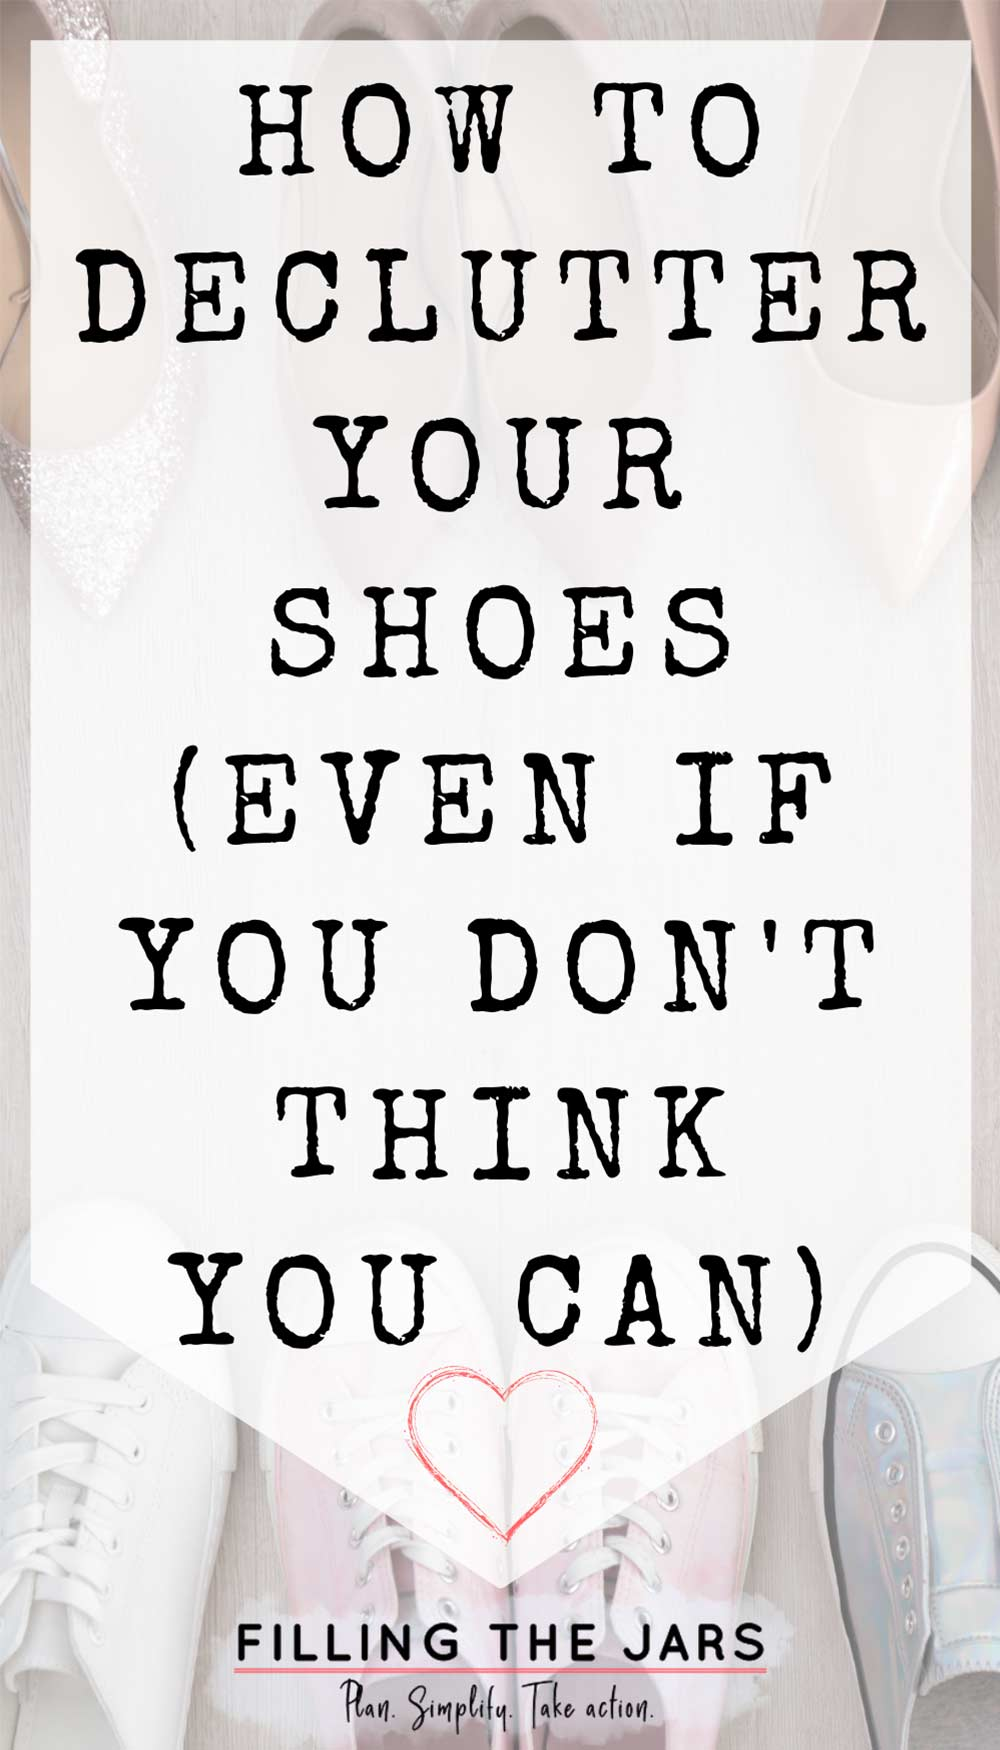 Text how to declutter your shoes on white background over image of several pairs of shoes lined up on wood floor.